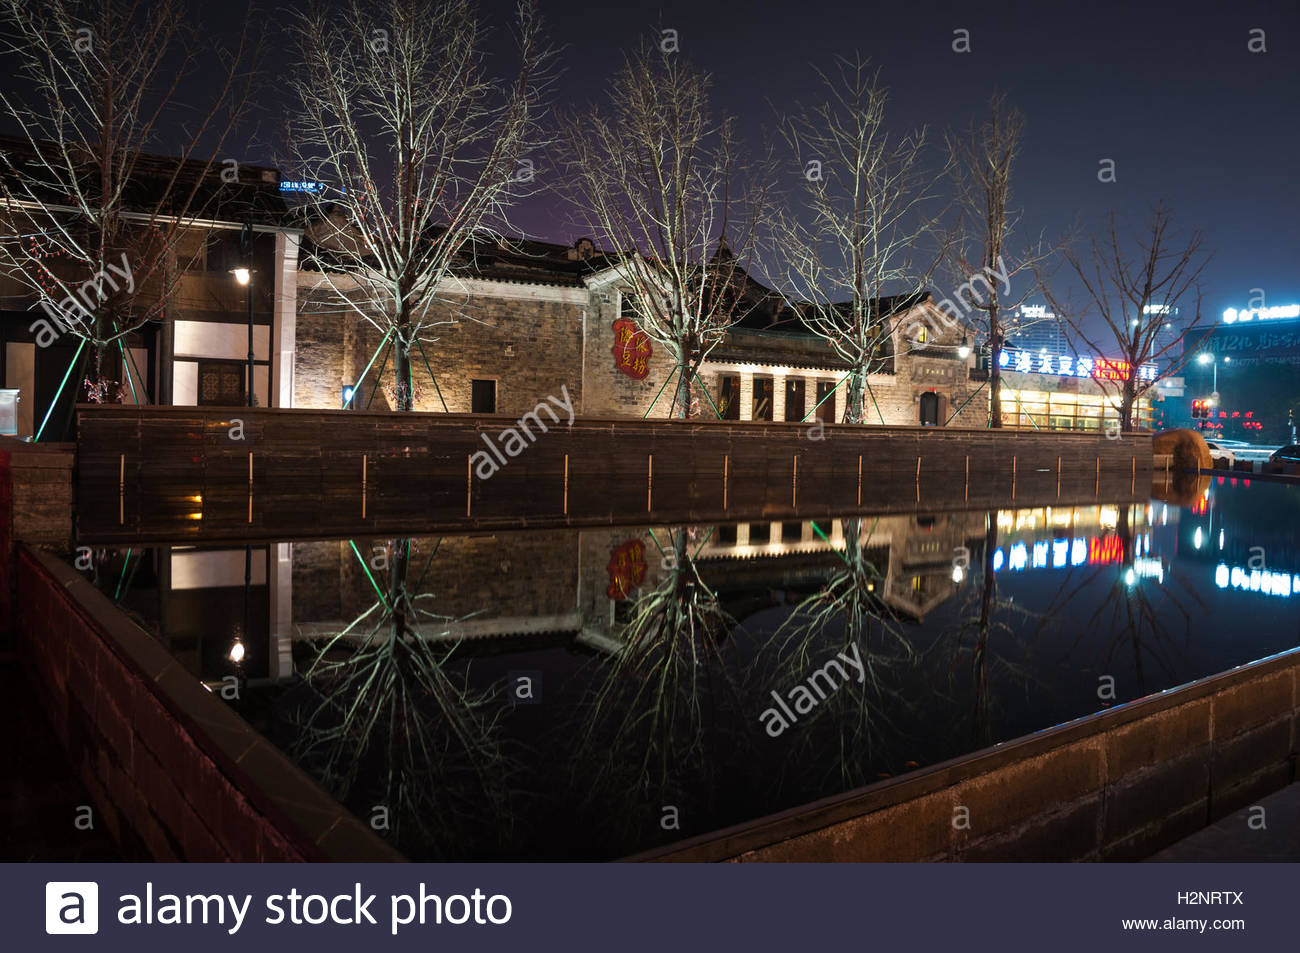 Old buildings at the Moon Lake Flourishing Garden complex reflected in water at night in Ningbo, Zhejiang Province, - Stock Image